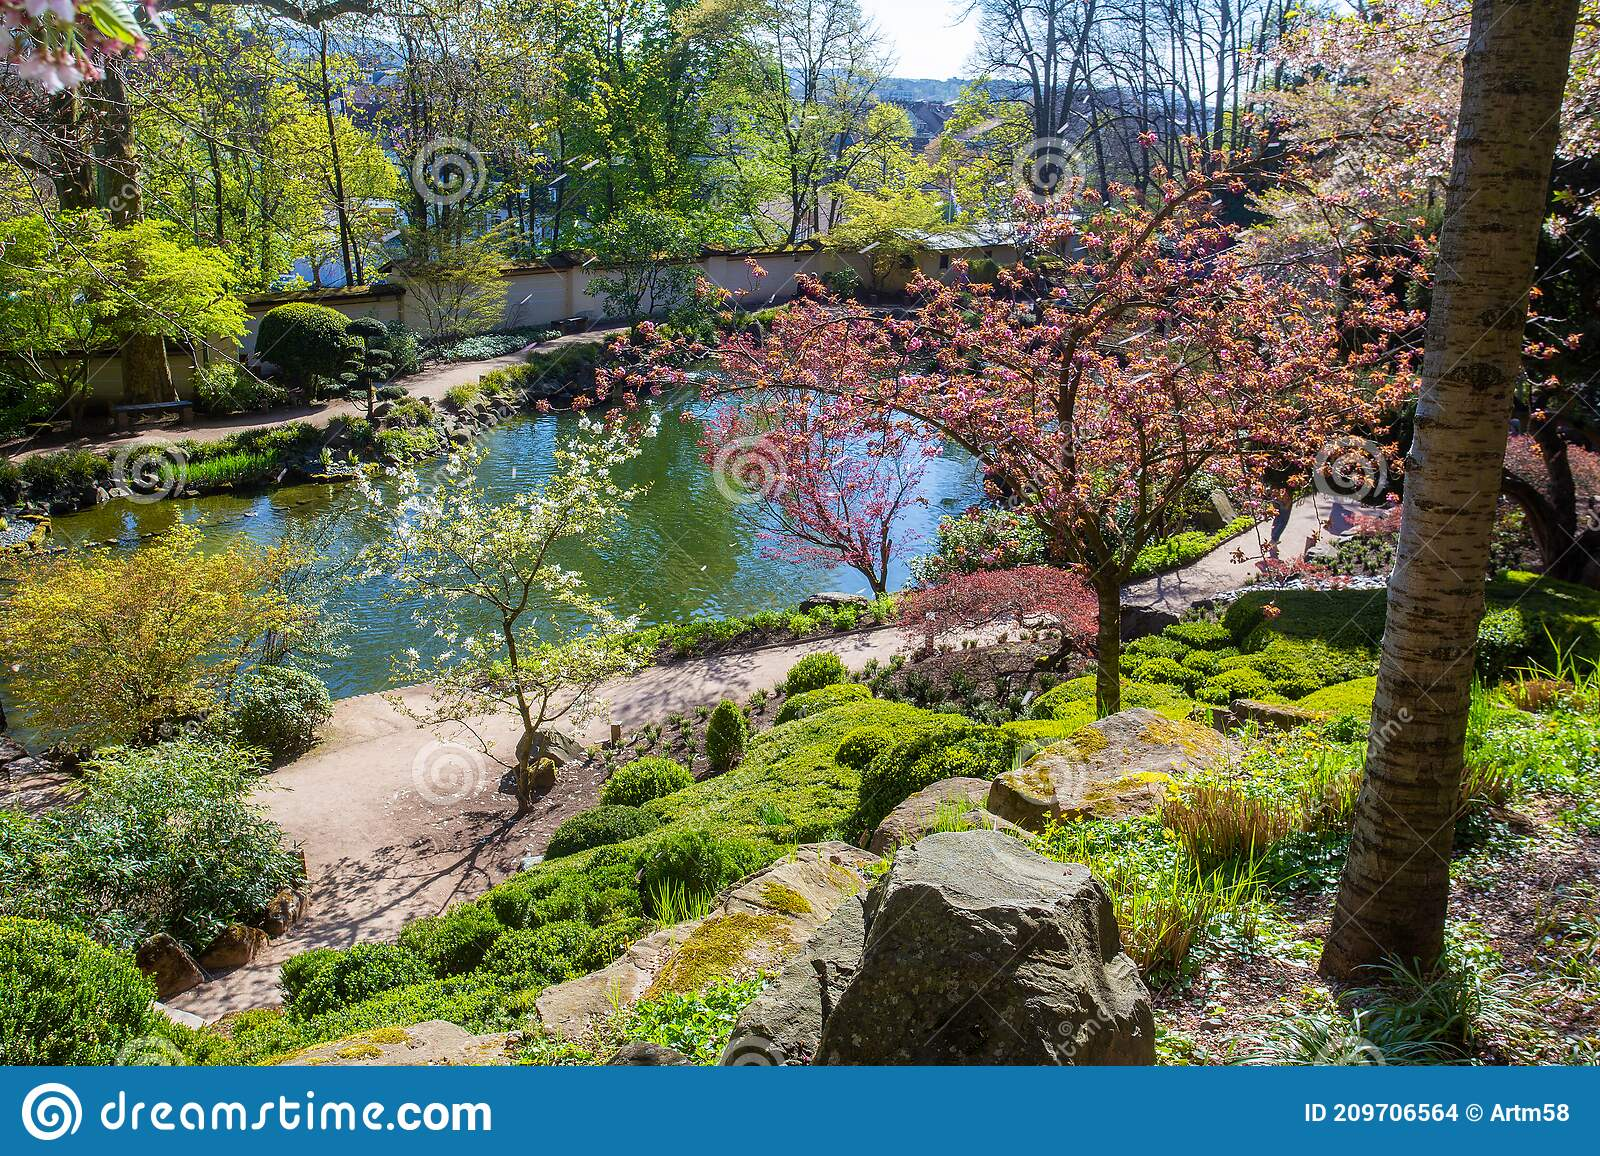 3 548 Sakura Pond Photos Free Royalty Free Stock Photos From Dreamstime